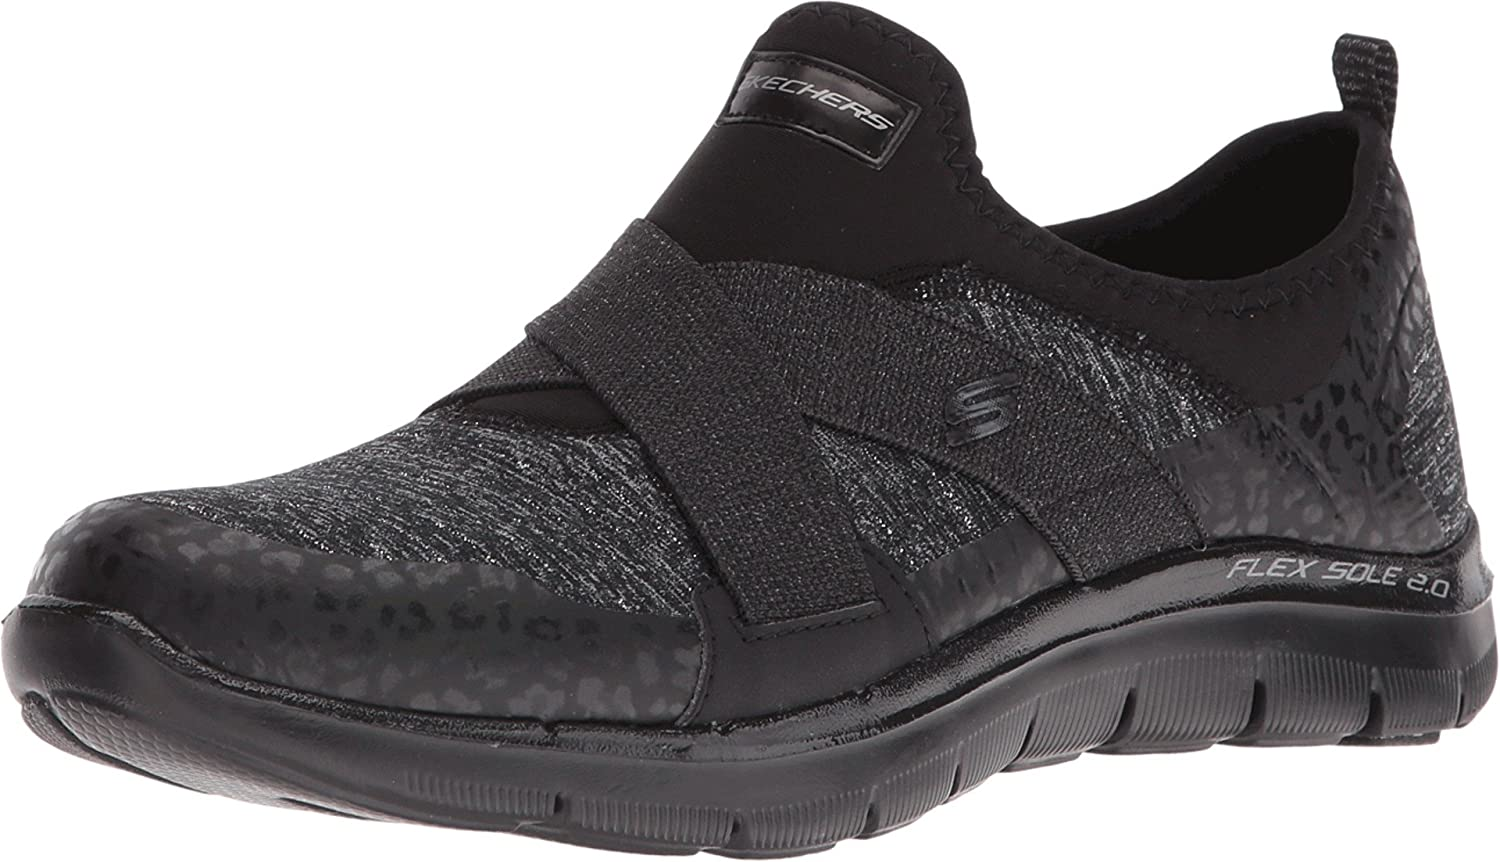 Skechers Sport Women's Flex Appeal 2.0 New Image Fashion Sneaker B01EOUBAVY 7.5 B(M) US|Black